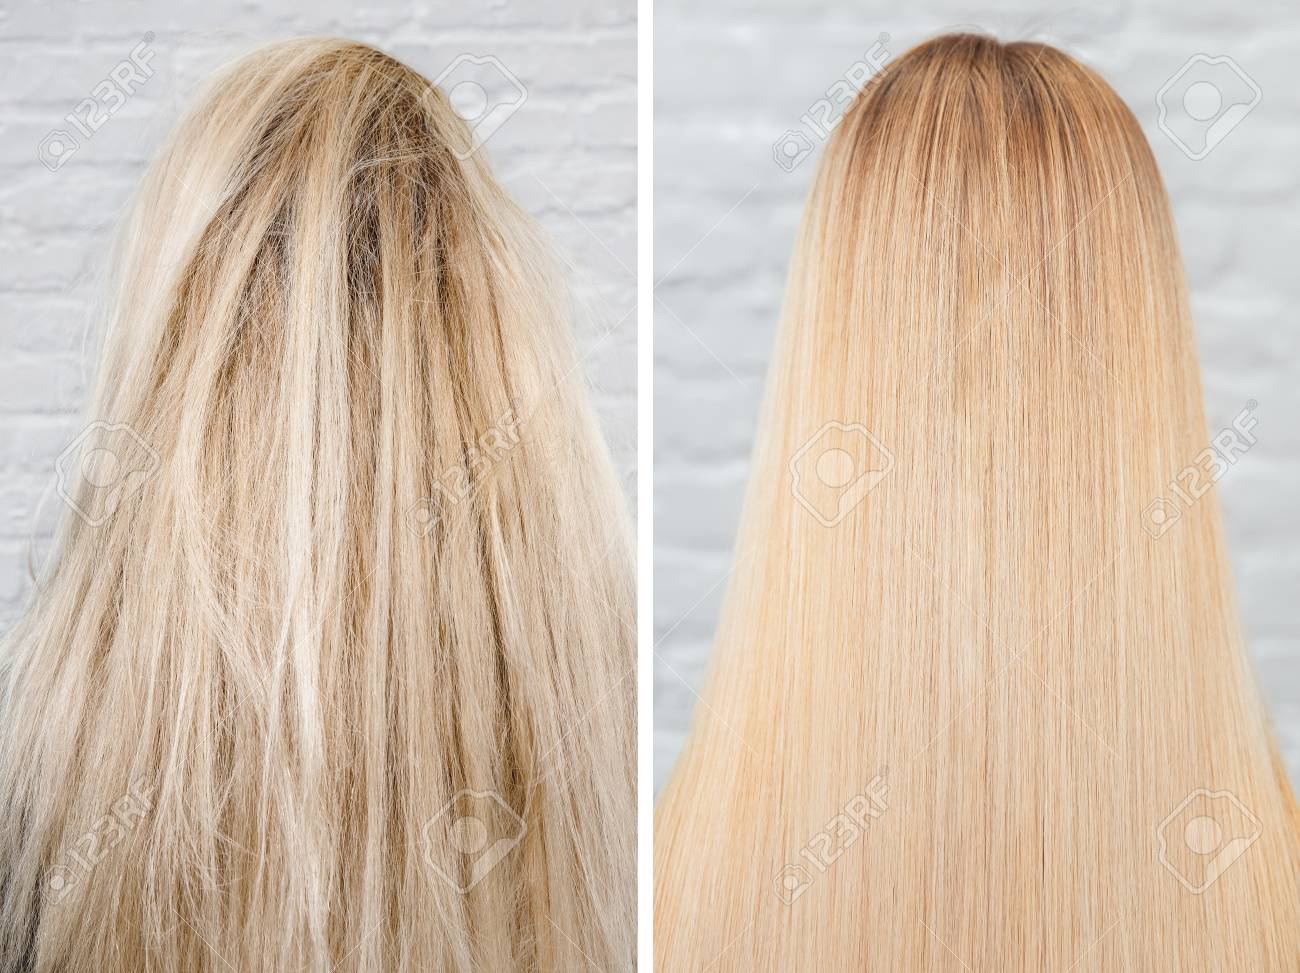 Before and after straightenin treatment. Sick, cut and healthy hair care keratin - 124816919